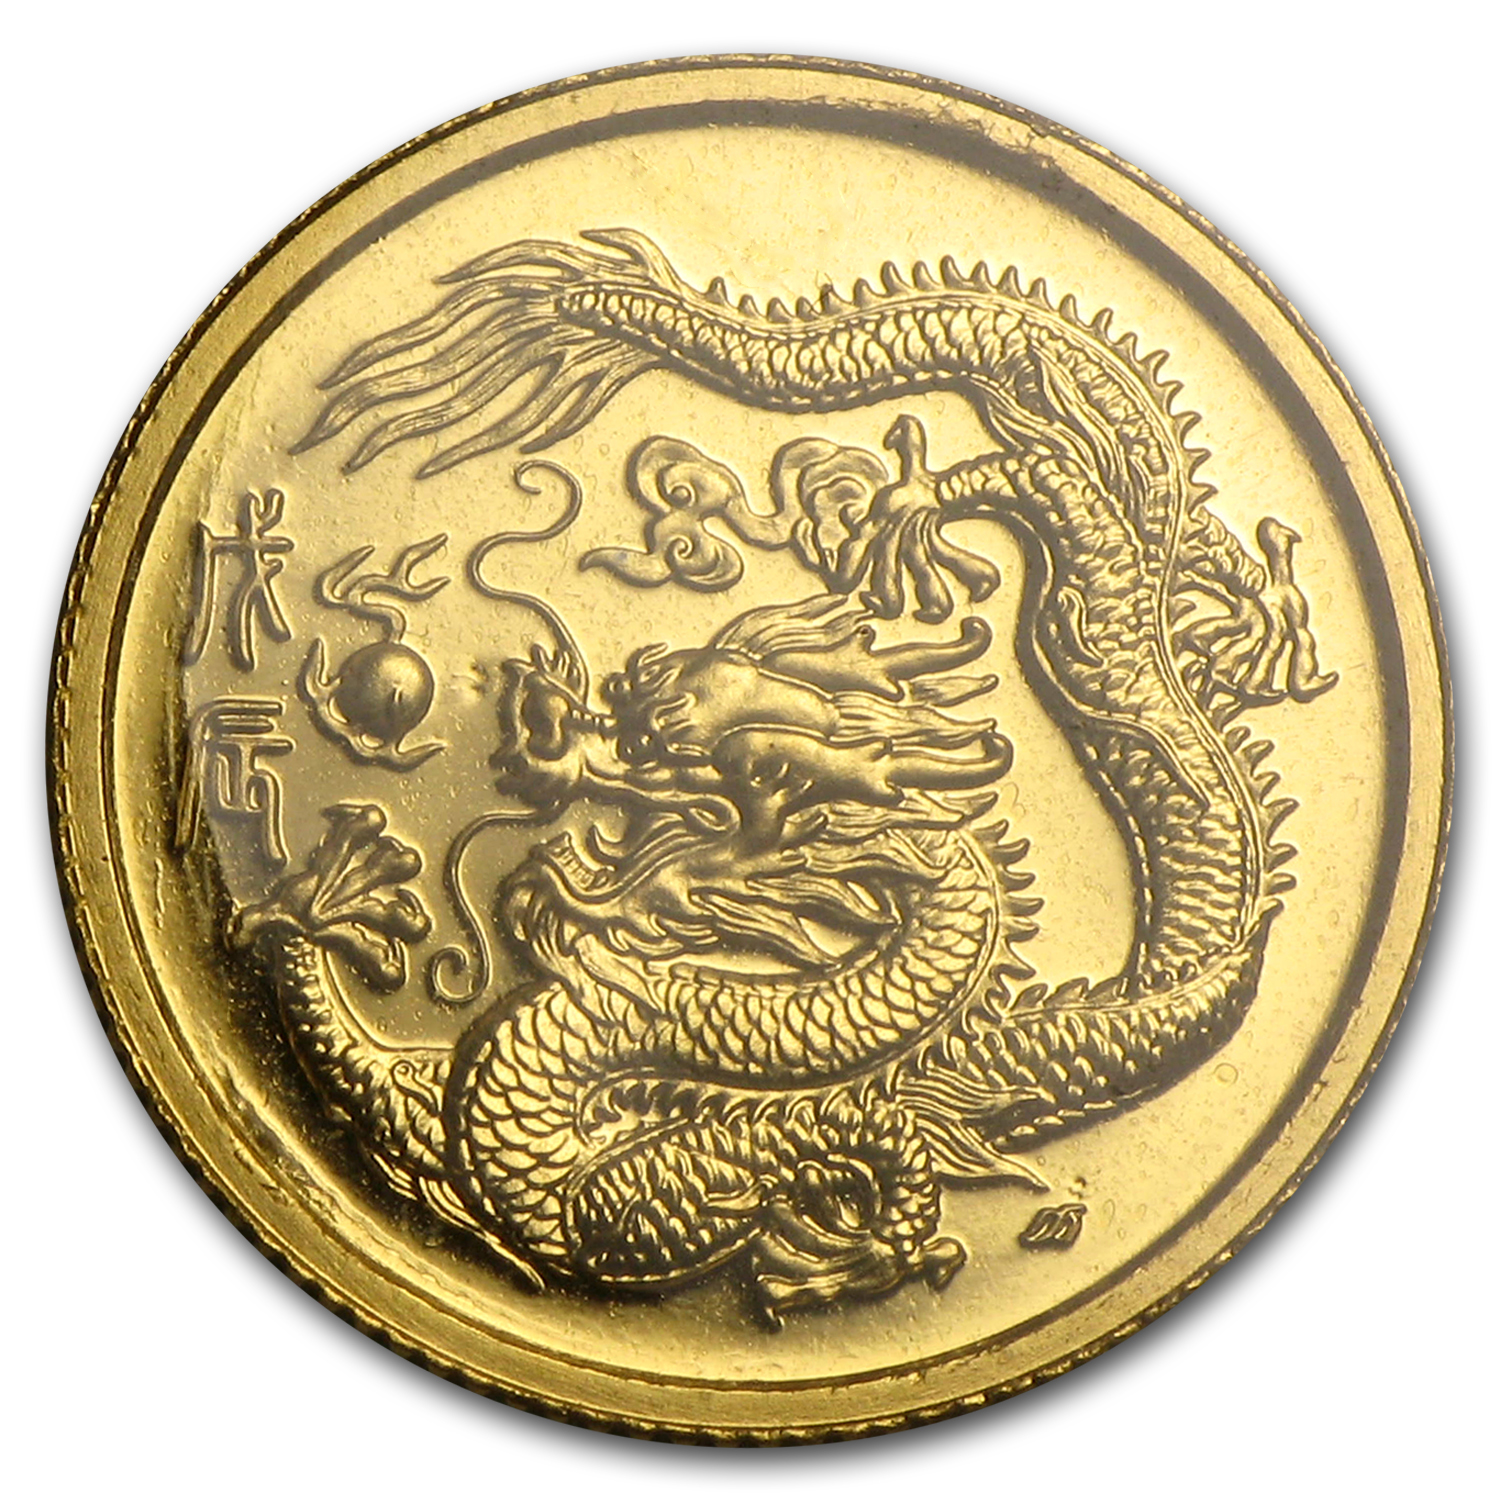 1988 Singapore 1/20 oz Gold 5 Singold Year of the Dragon BU